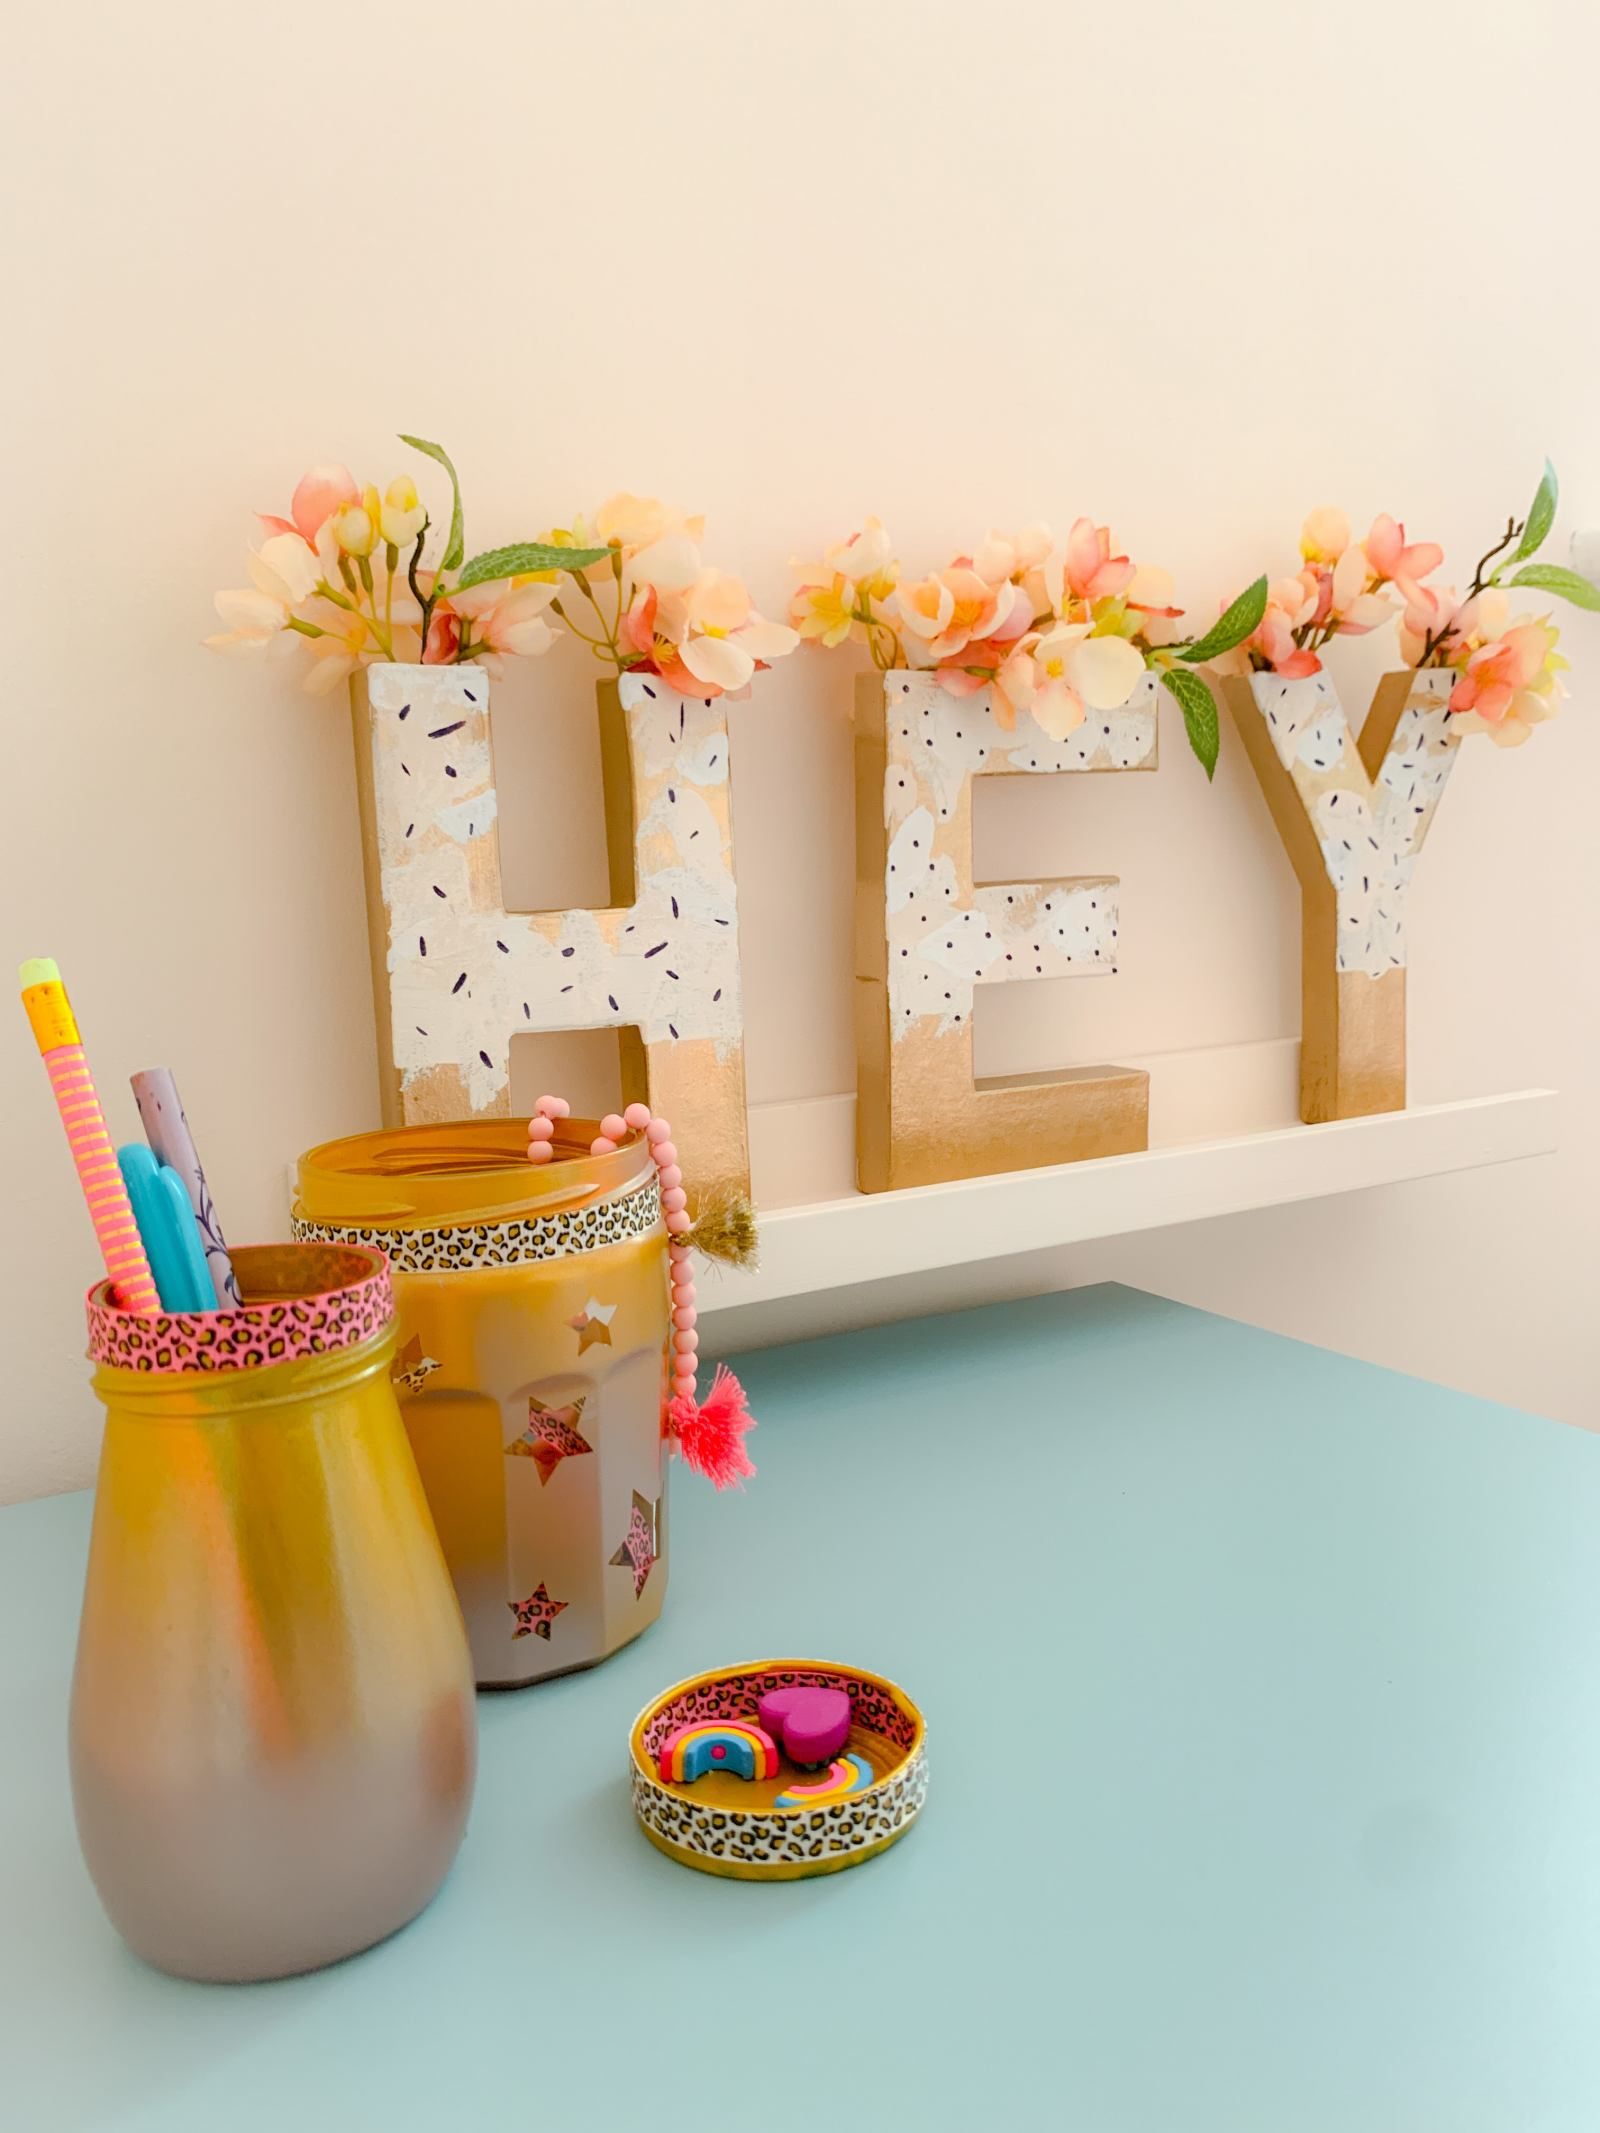 DIY HEY Typography Vase